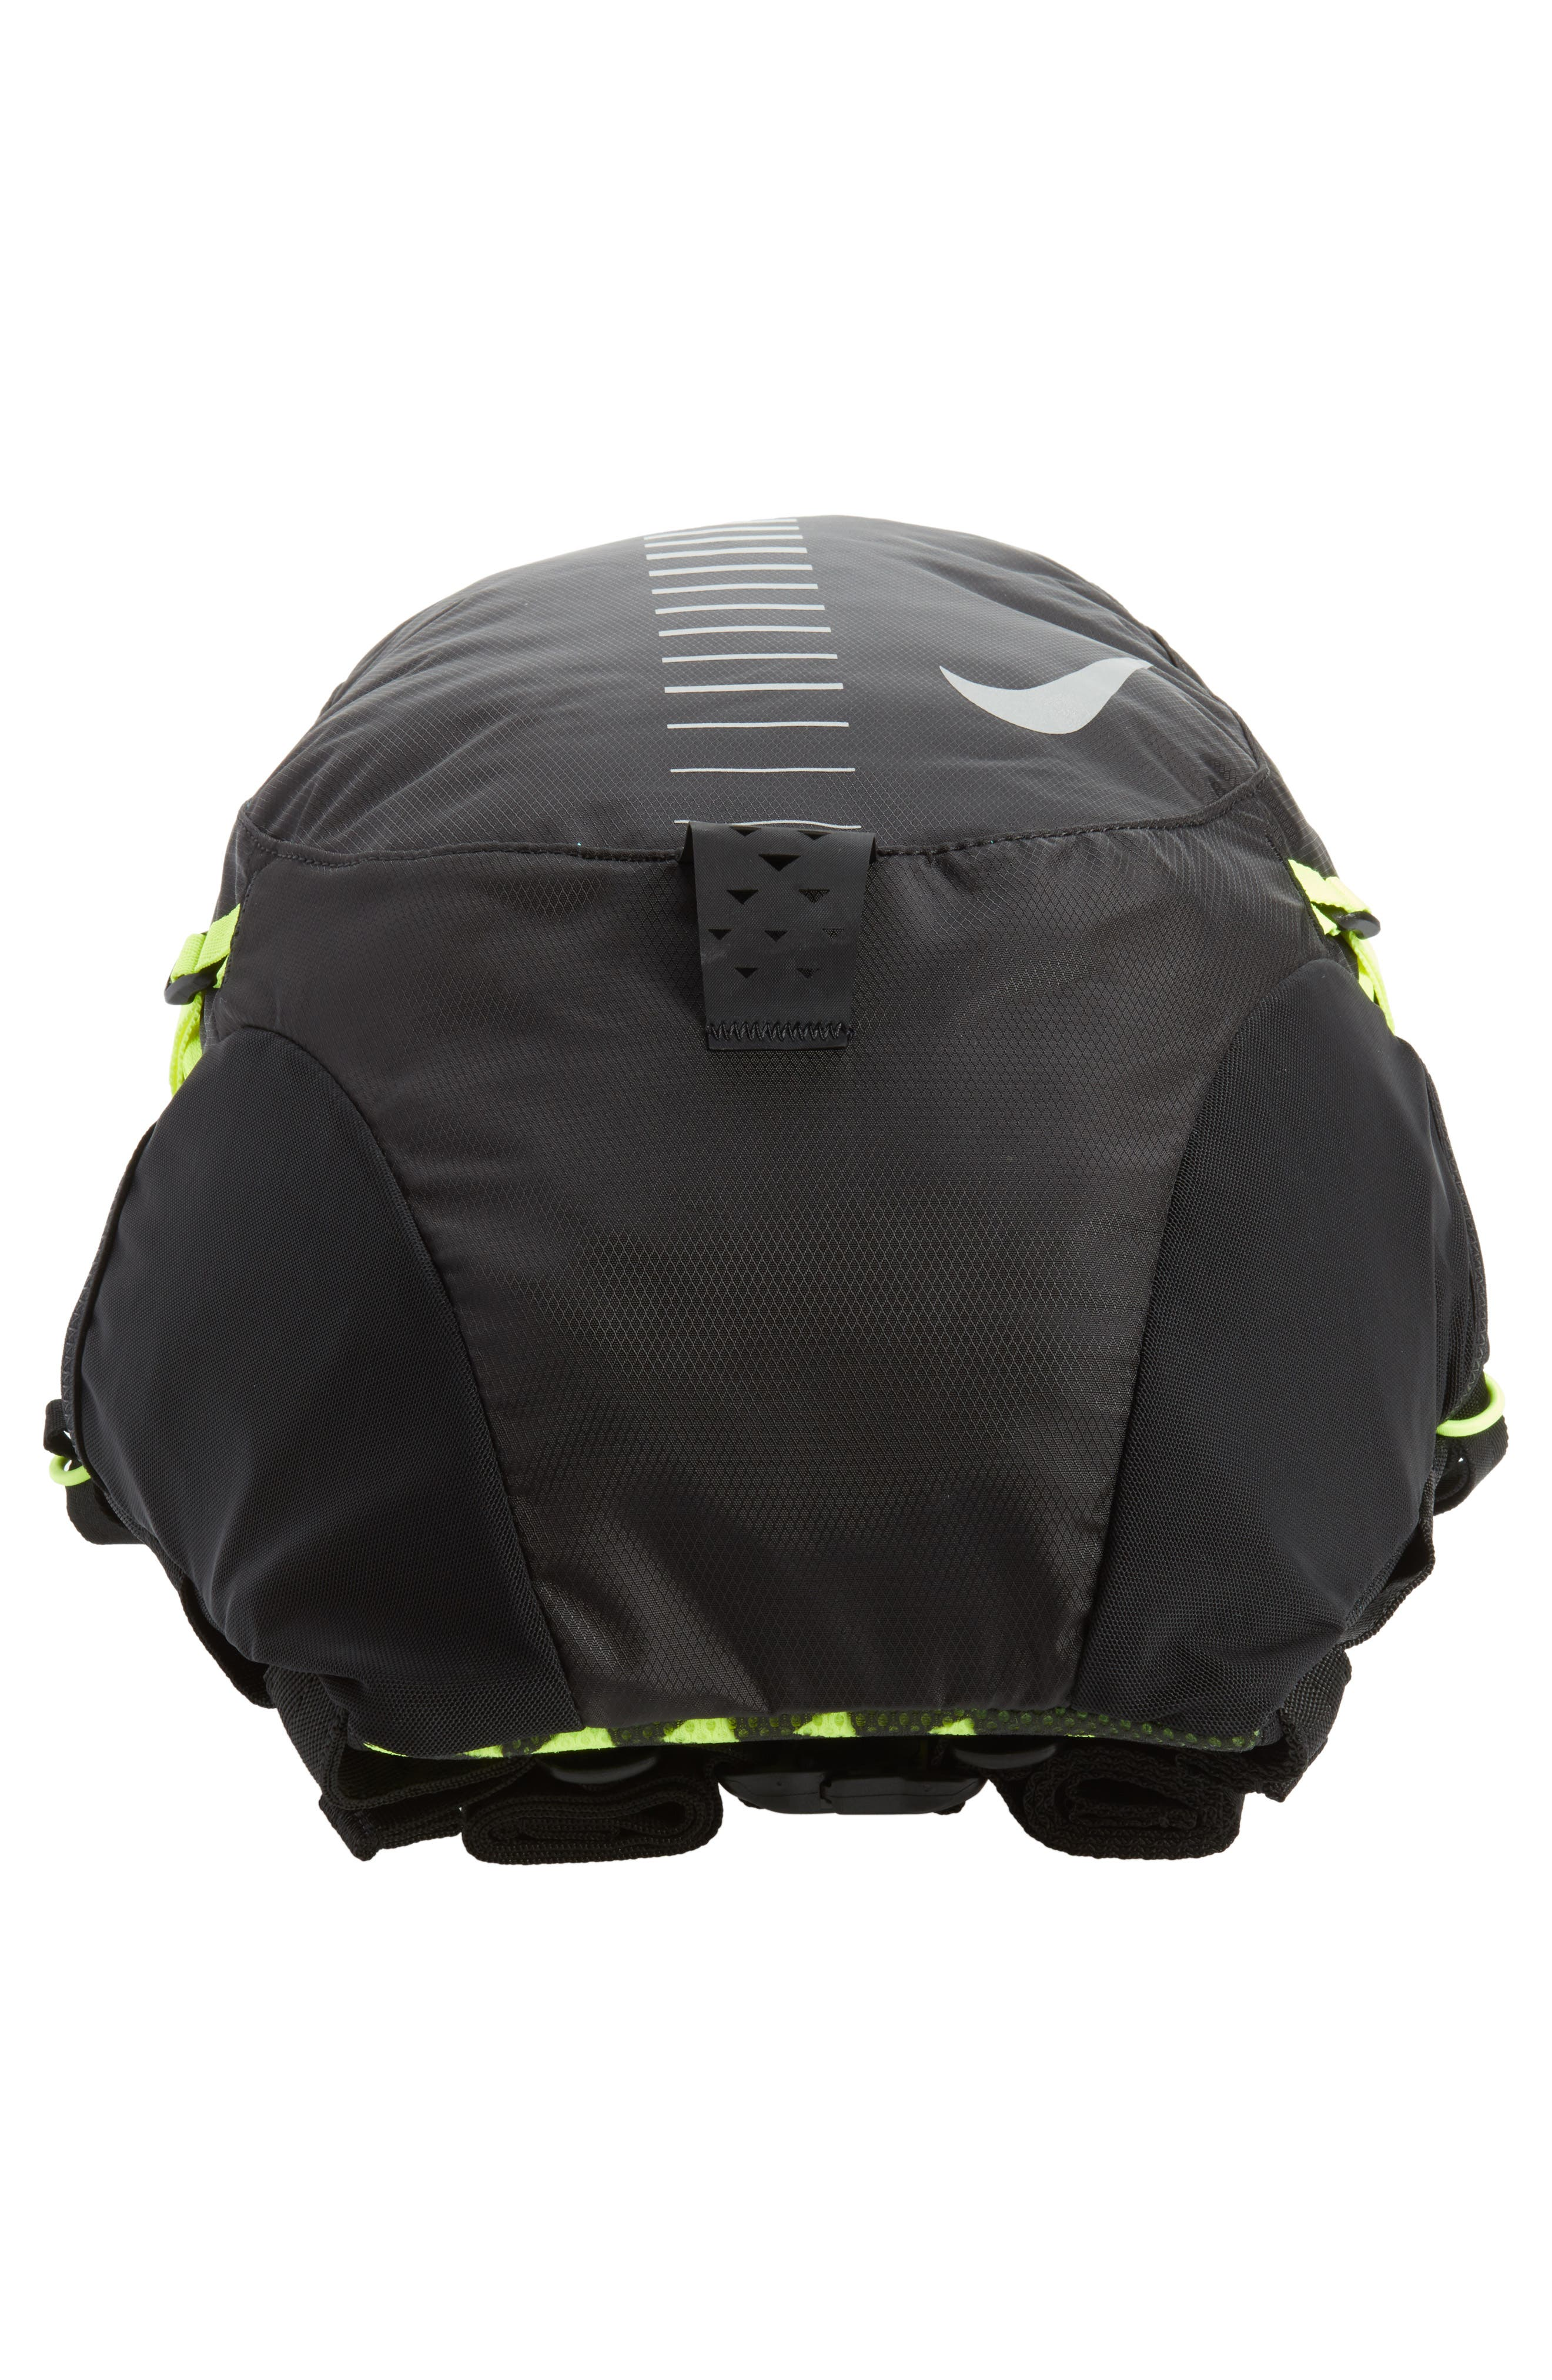 Run Commuter Backpack,                             Alternate thumbnail 6, color,                             Black/ Volt/ Silver